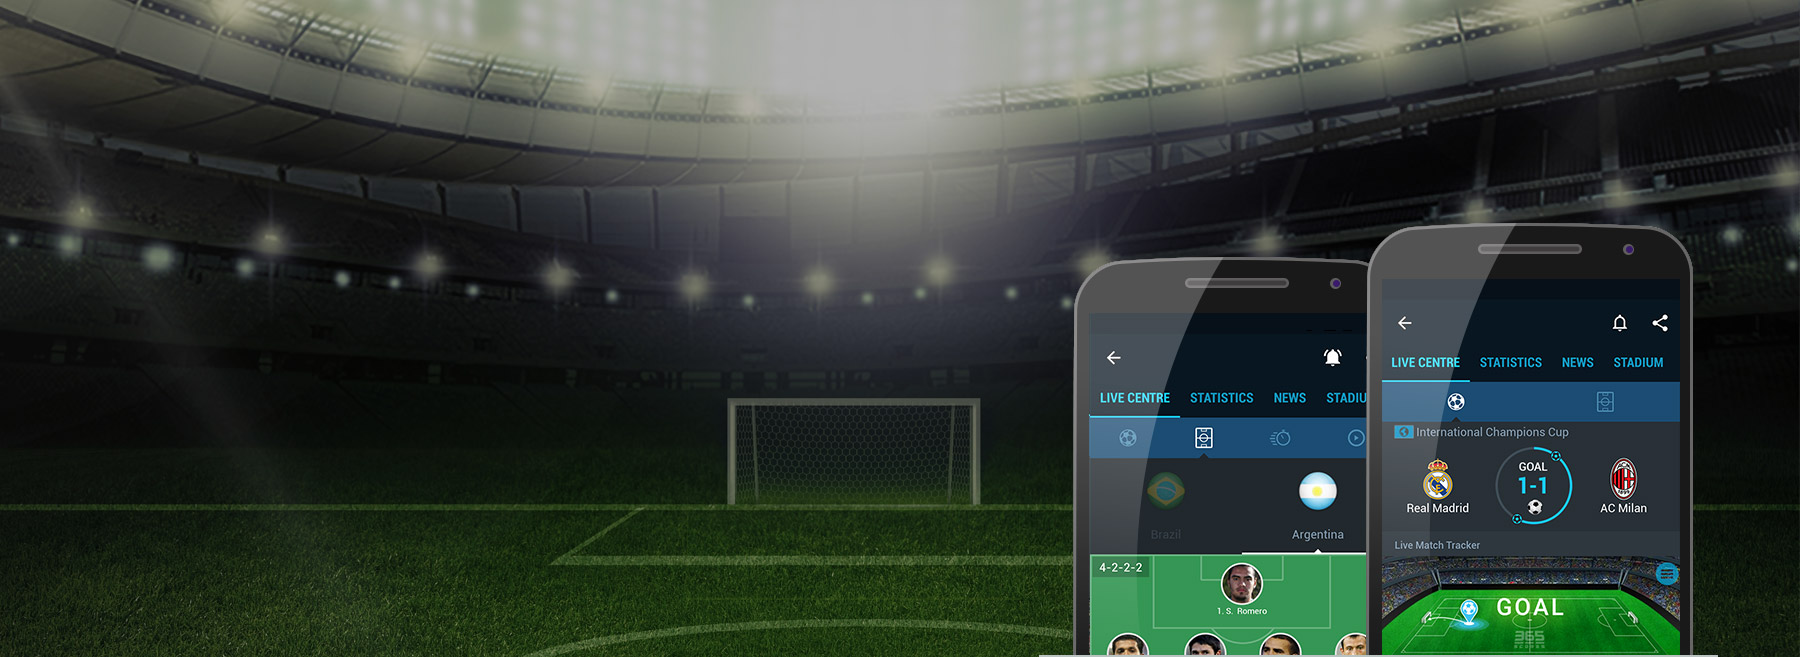 The 5 Best Football Betting Apps (LiveScore, Stats, News, Odds, Tips) – UPDATED 2021